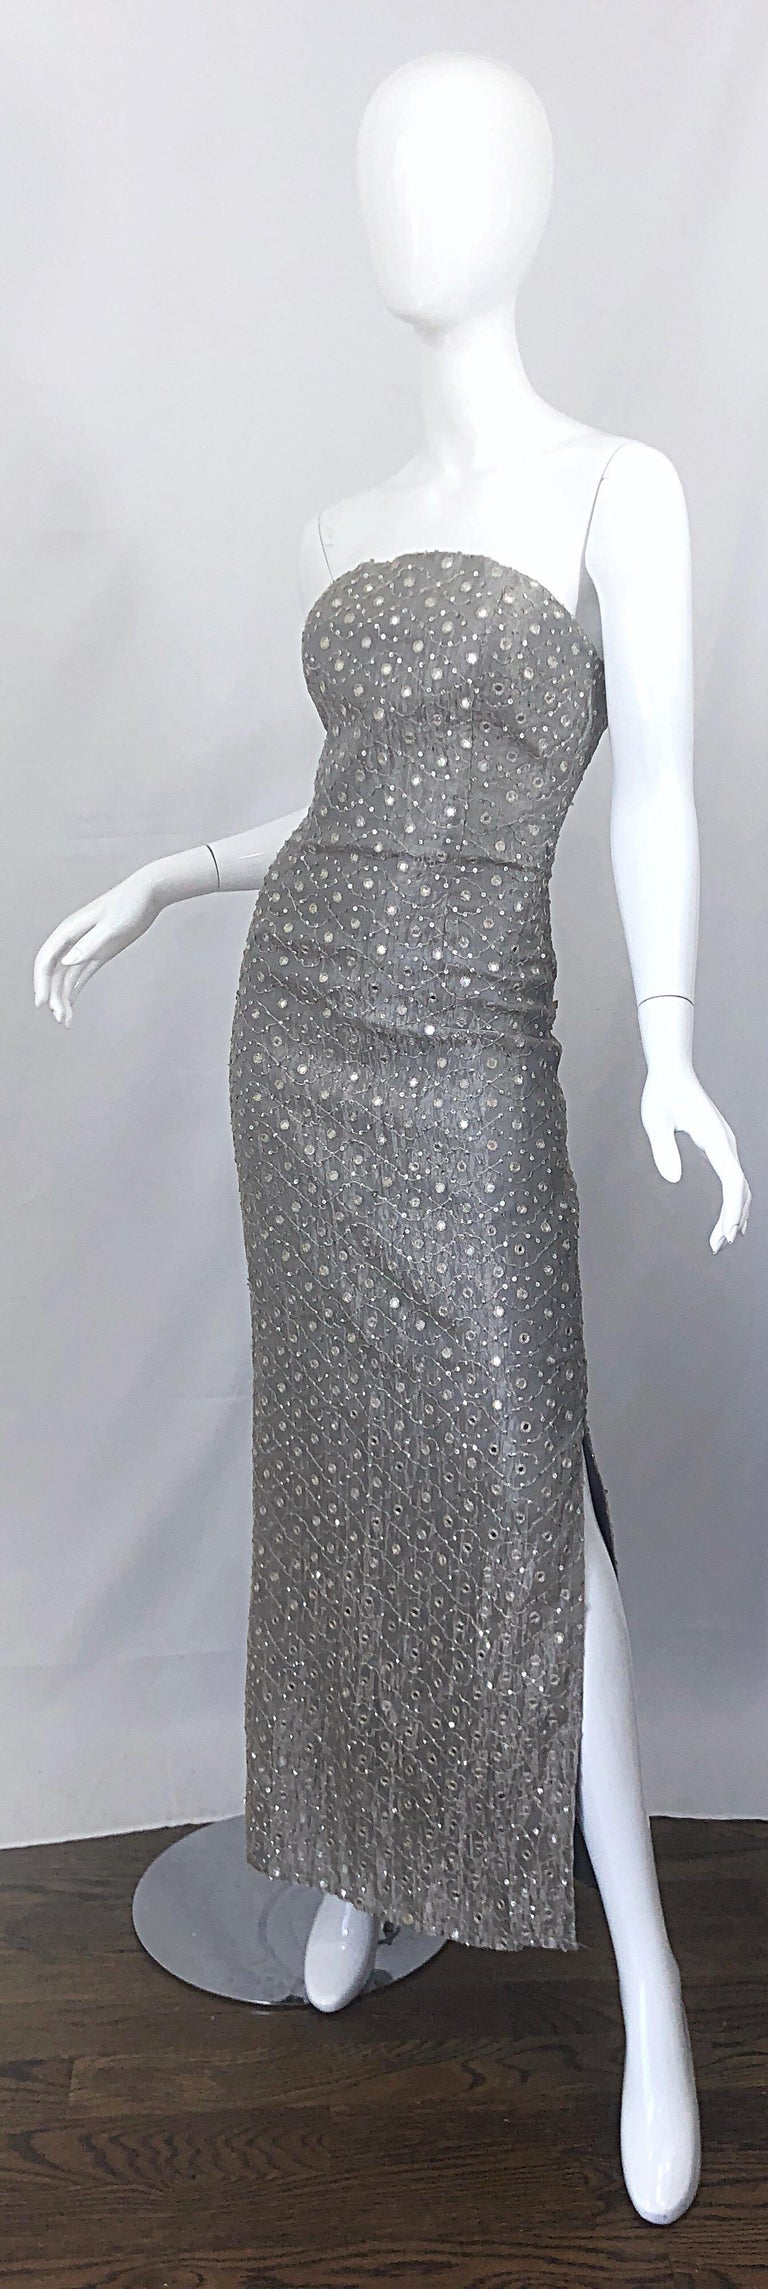 1990s Silver Grey Mirrored Sequins Size 6 Strapless Silk Vintage Gown Dress For Sale 7